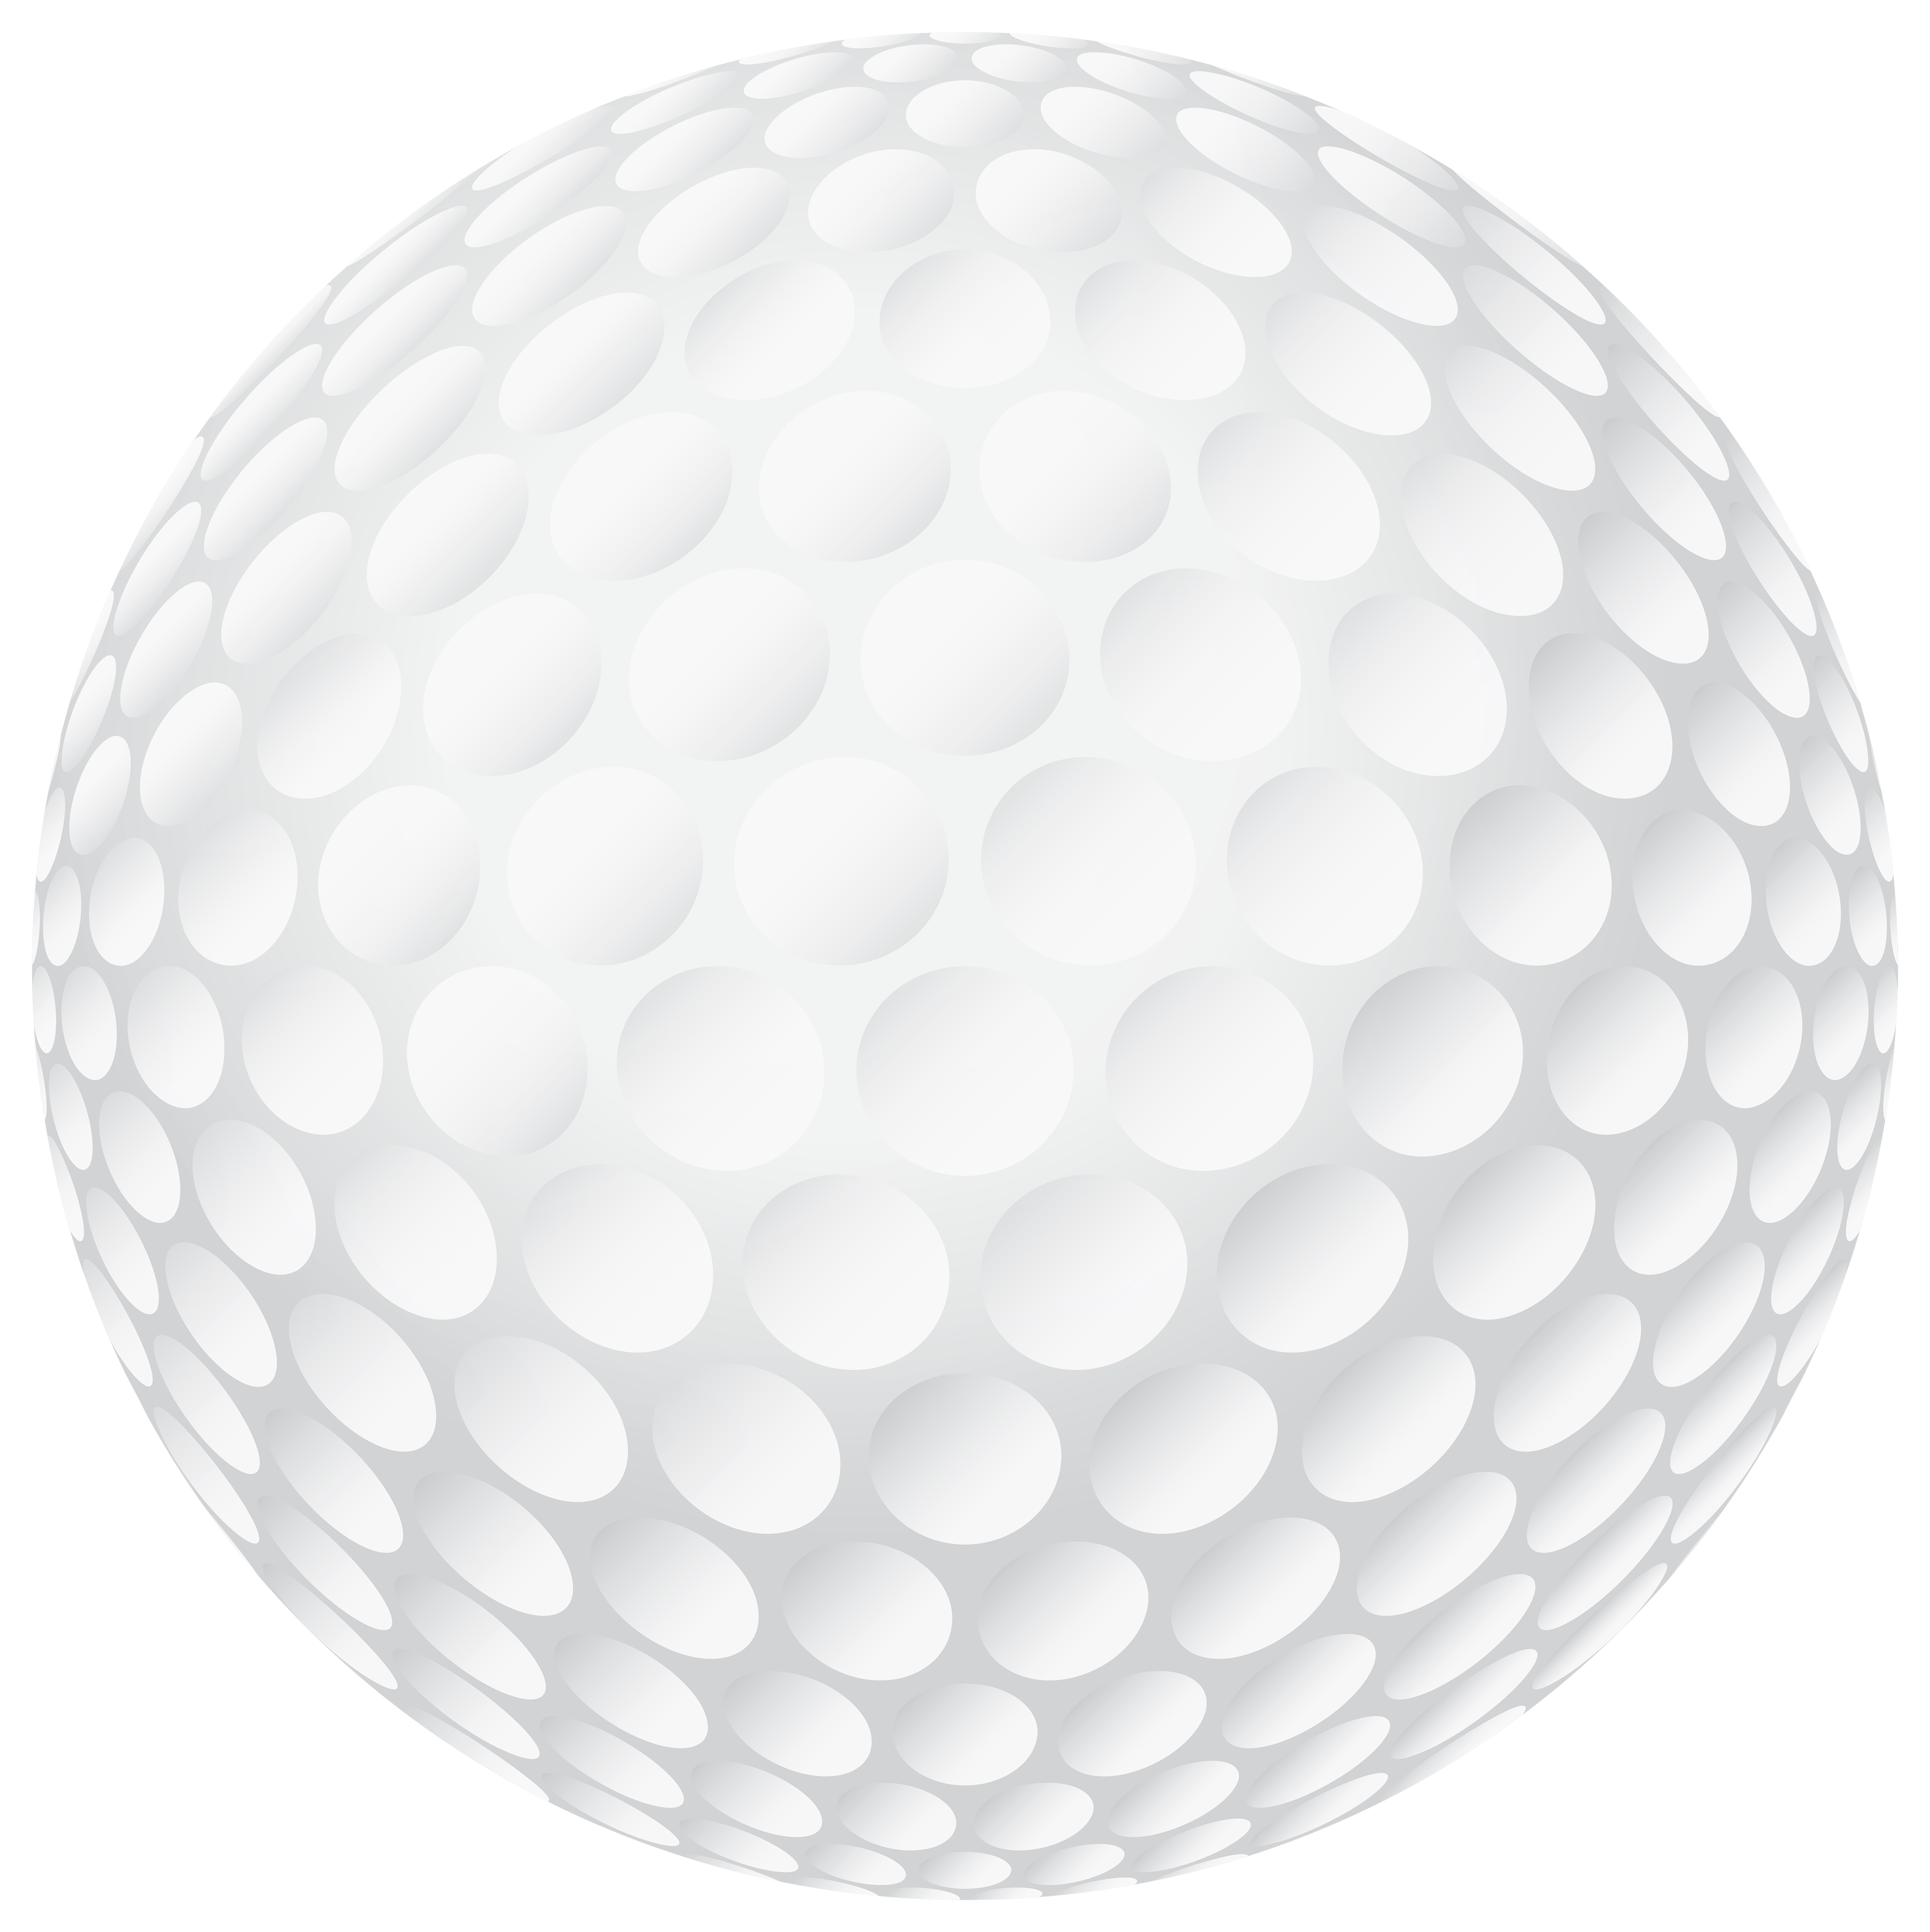 Golf ball free png. Cube clipart sphere